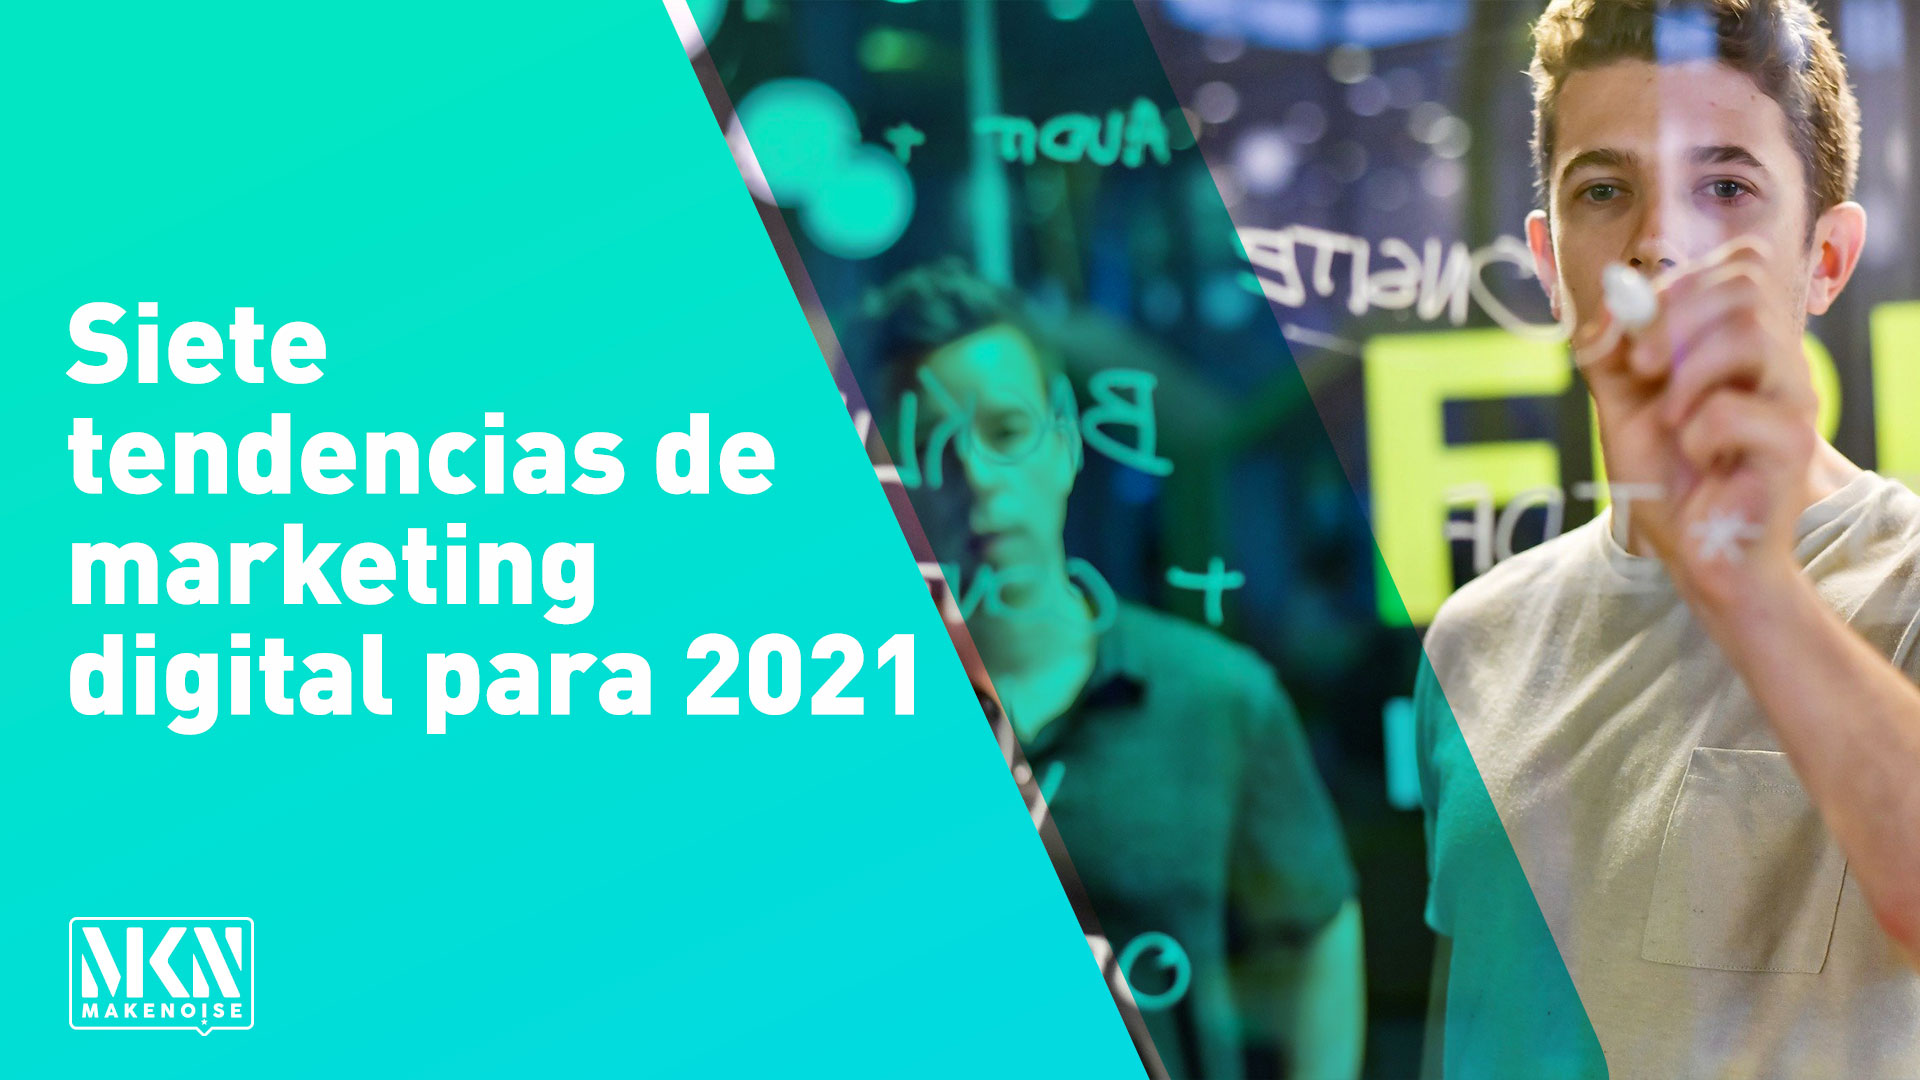 Siete tendencias de marketing digital para 2021